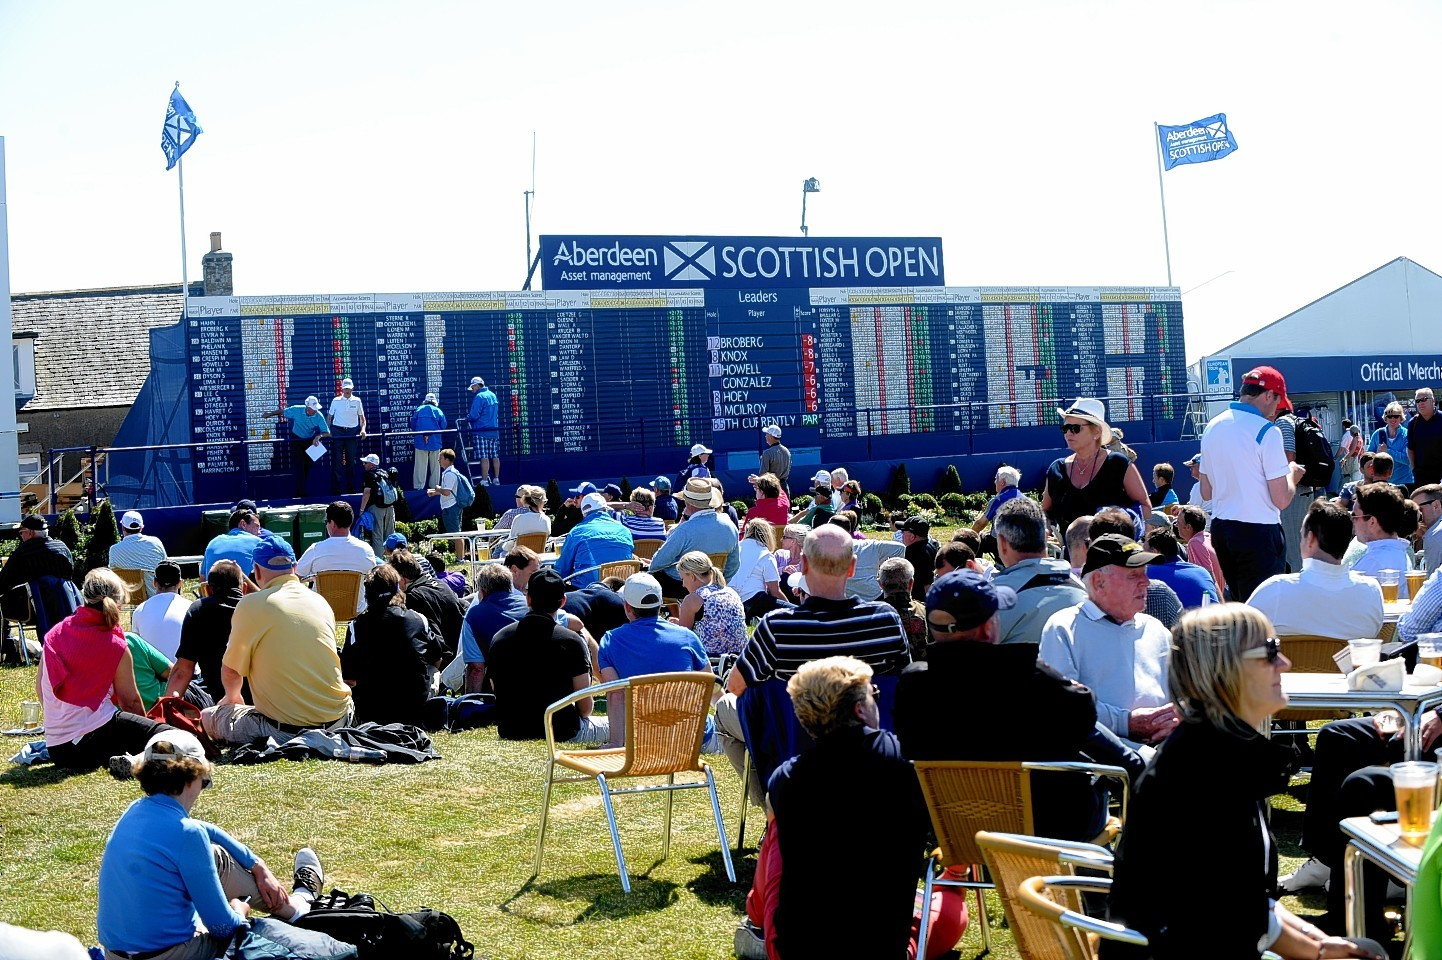 Crowds at the Scottish Open at Royal Aberdeen